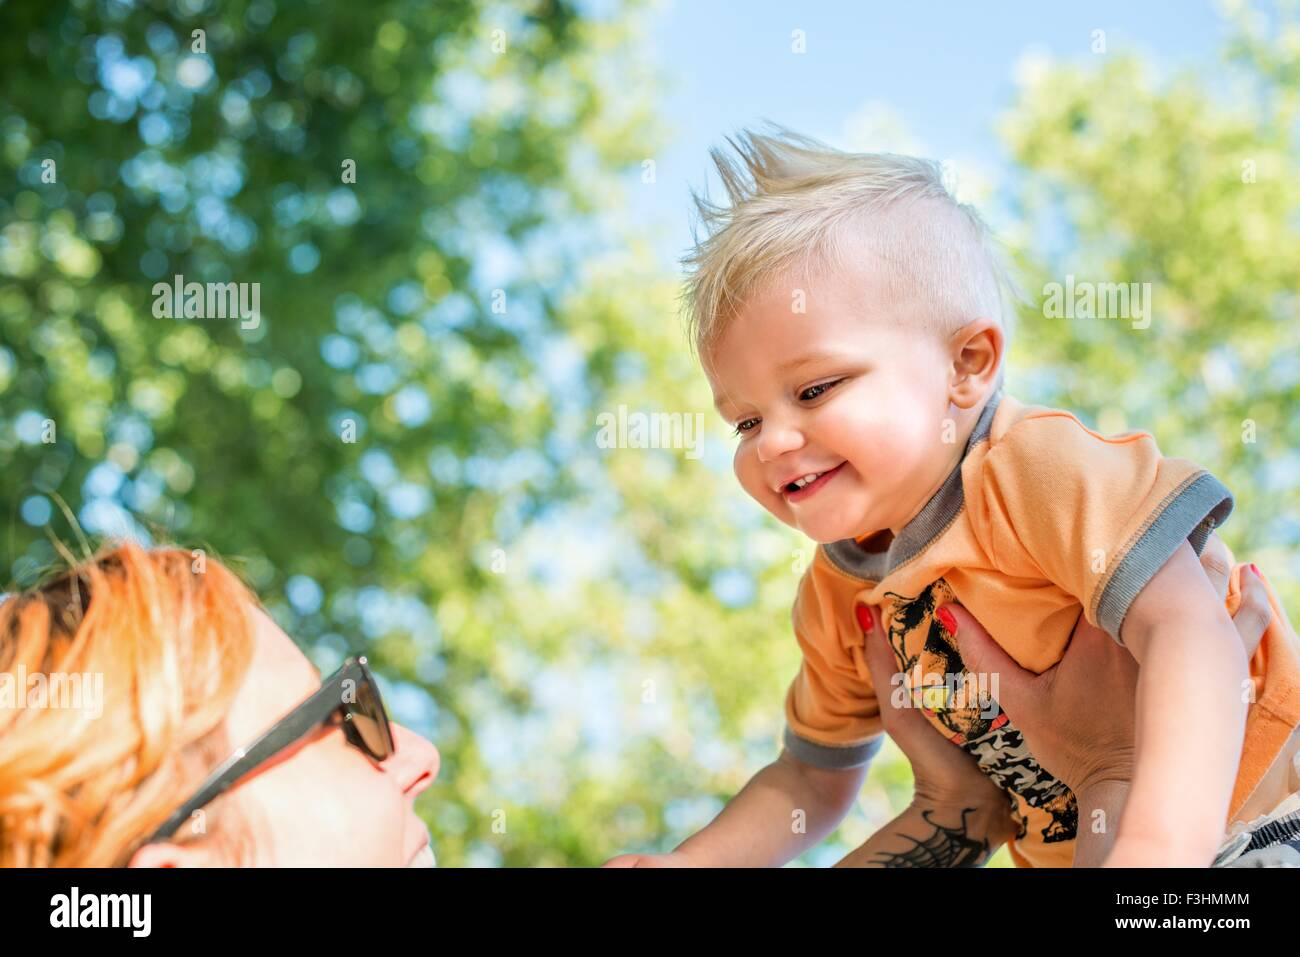 Low angle view of mother holding up smiling baby boy - Stock Image